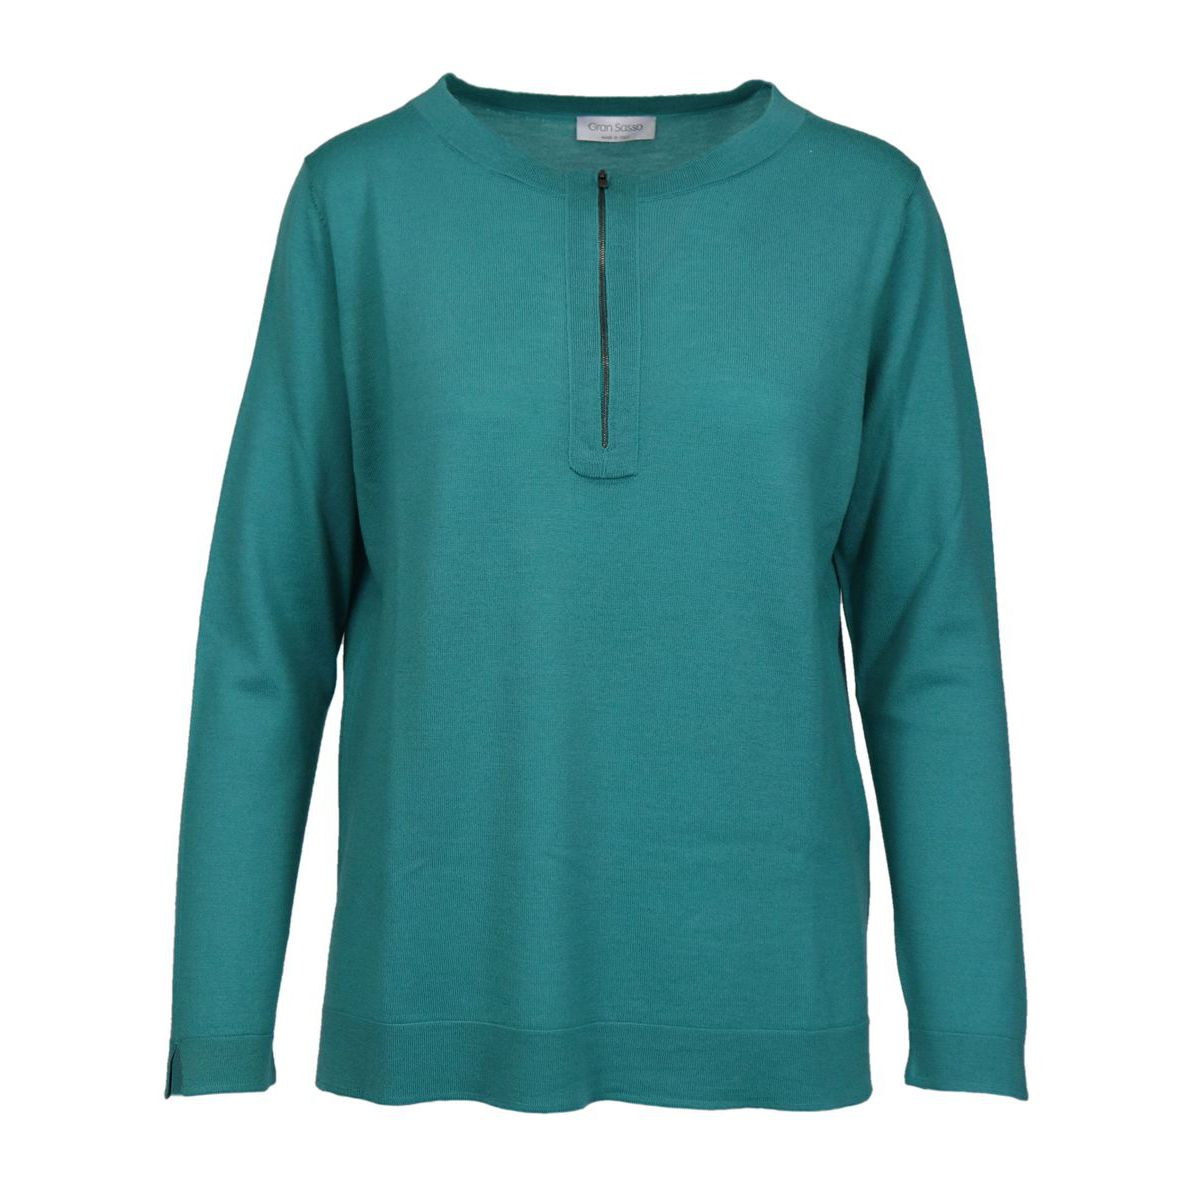 Wool crewneck sweater with zip Mint green Gran Sasso